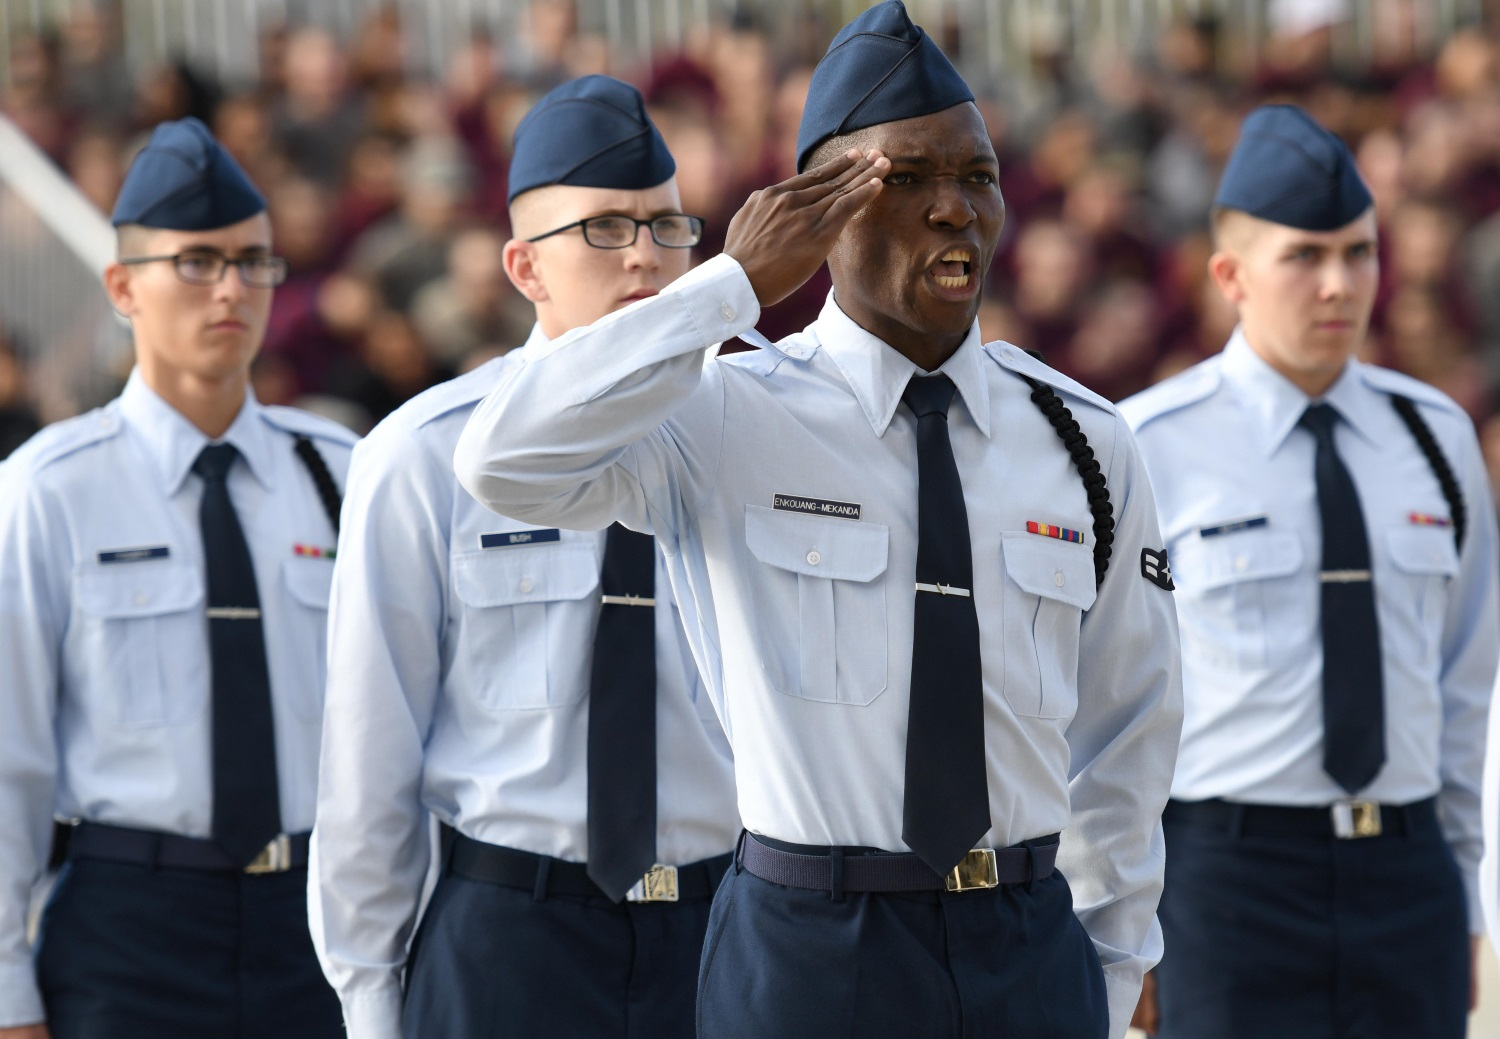 Airman 1st Class Michael Enkouang-Mekanda, 336th Training Squadron regulation drill team drillmaster, requests permission to enter the field of regulation drill competition during the 81st Training Group drill down at Keesler Air Force Base, Miss., Nov. 3, 2017. Airmen from the 81st TRG competed in the final quarterly open ranks inspection, regulation drill routine and freestyle drill routine. (Kemberly Groue/Air Force)